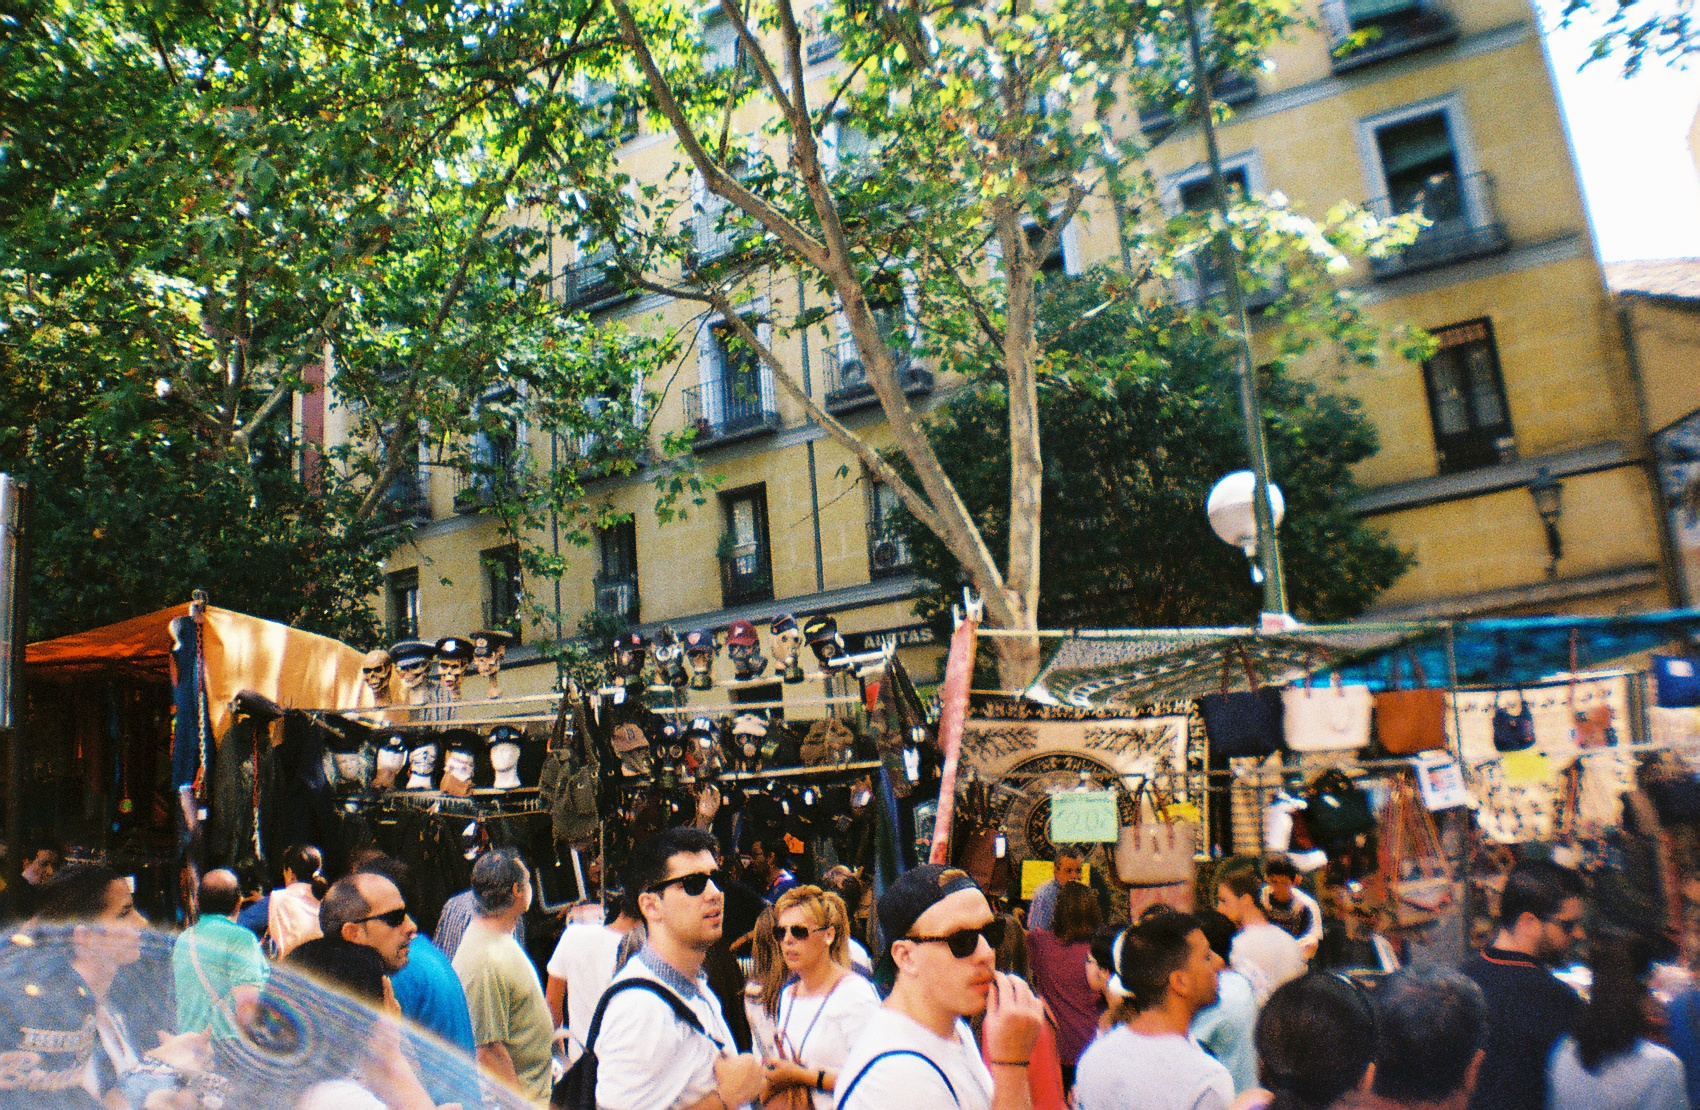 Crowded Street of El Rastro